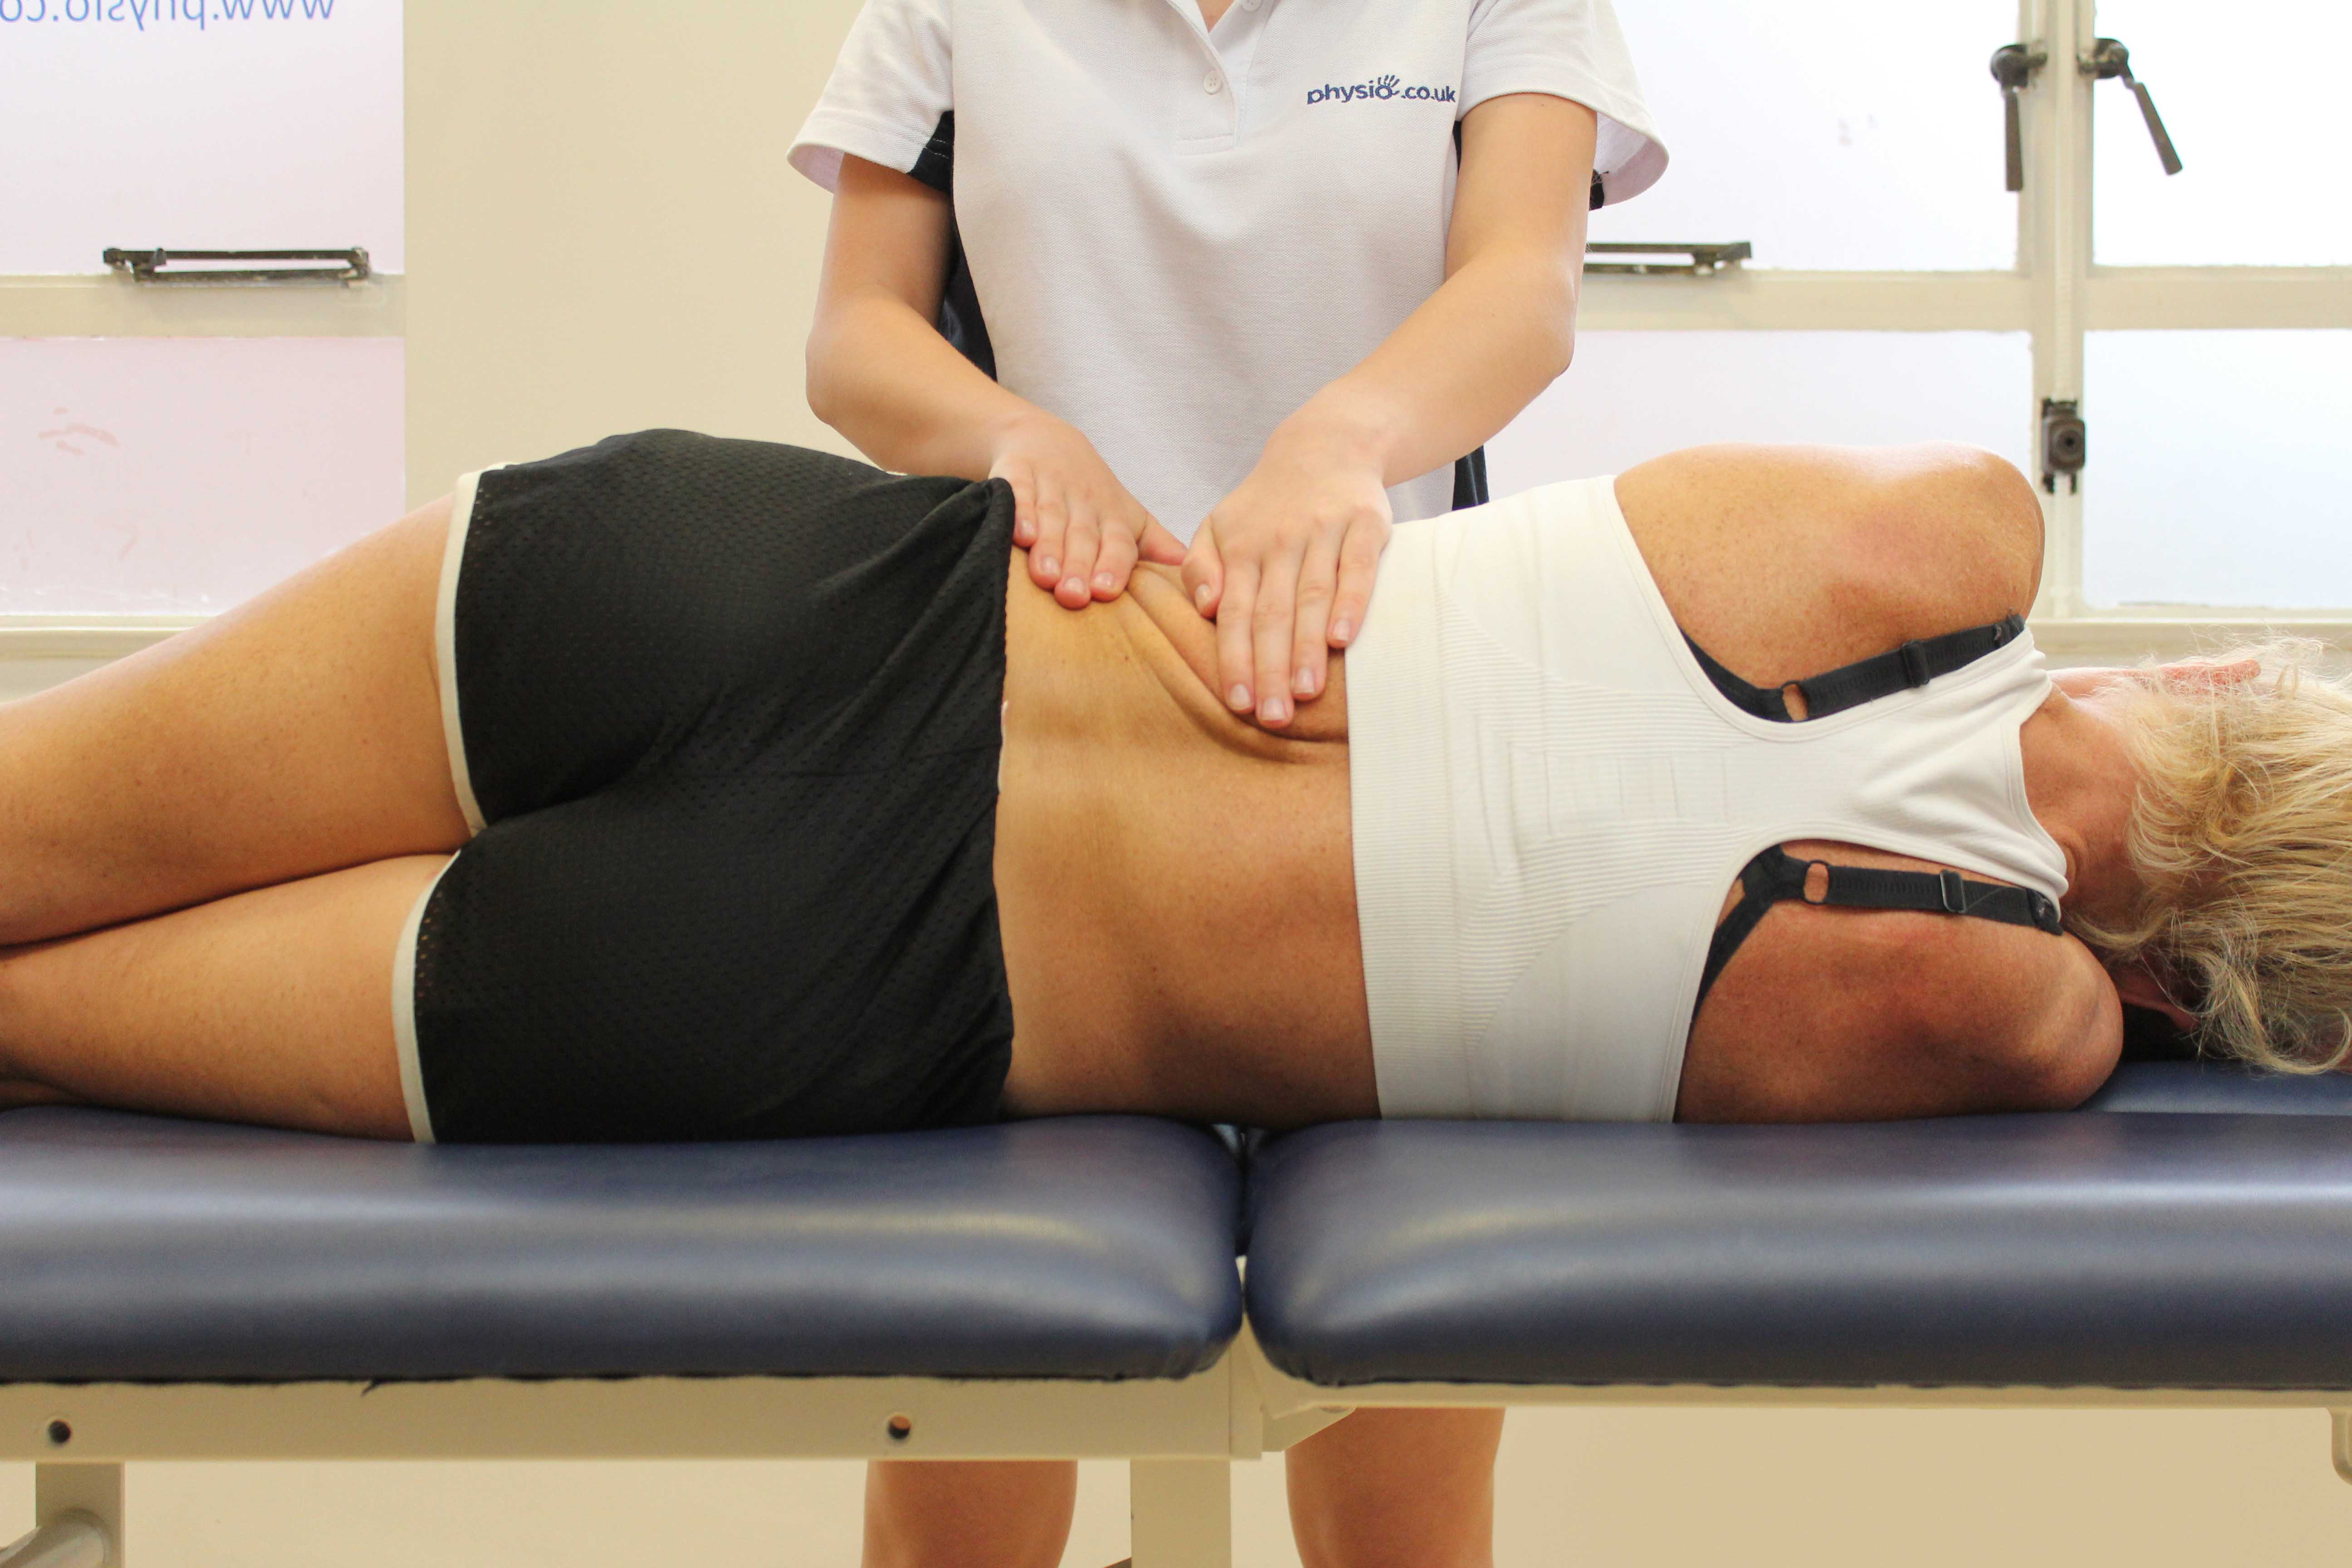 Soft tissue massage of oblique abdominal muscles